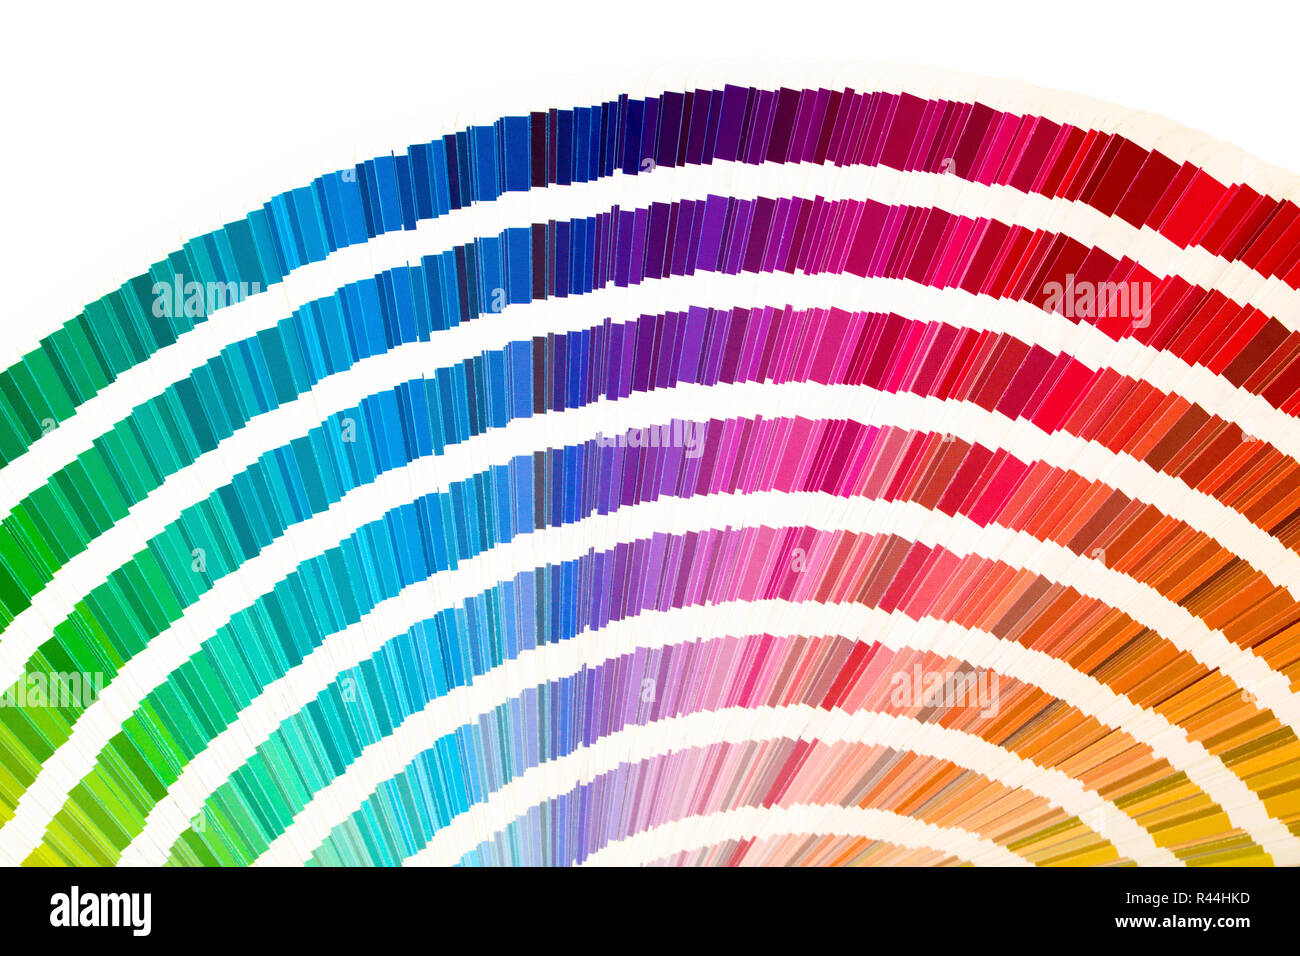 Rainbow sample colors catalogue in many shades of colors or spectrum isolated on white background. Color chart, sampler, palette. - Stock Image